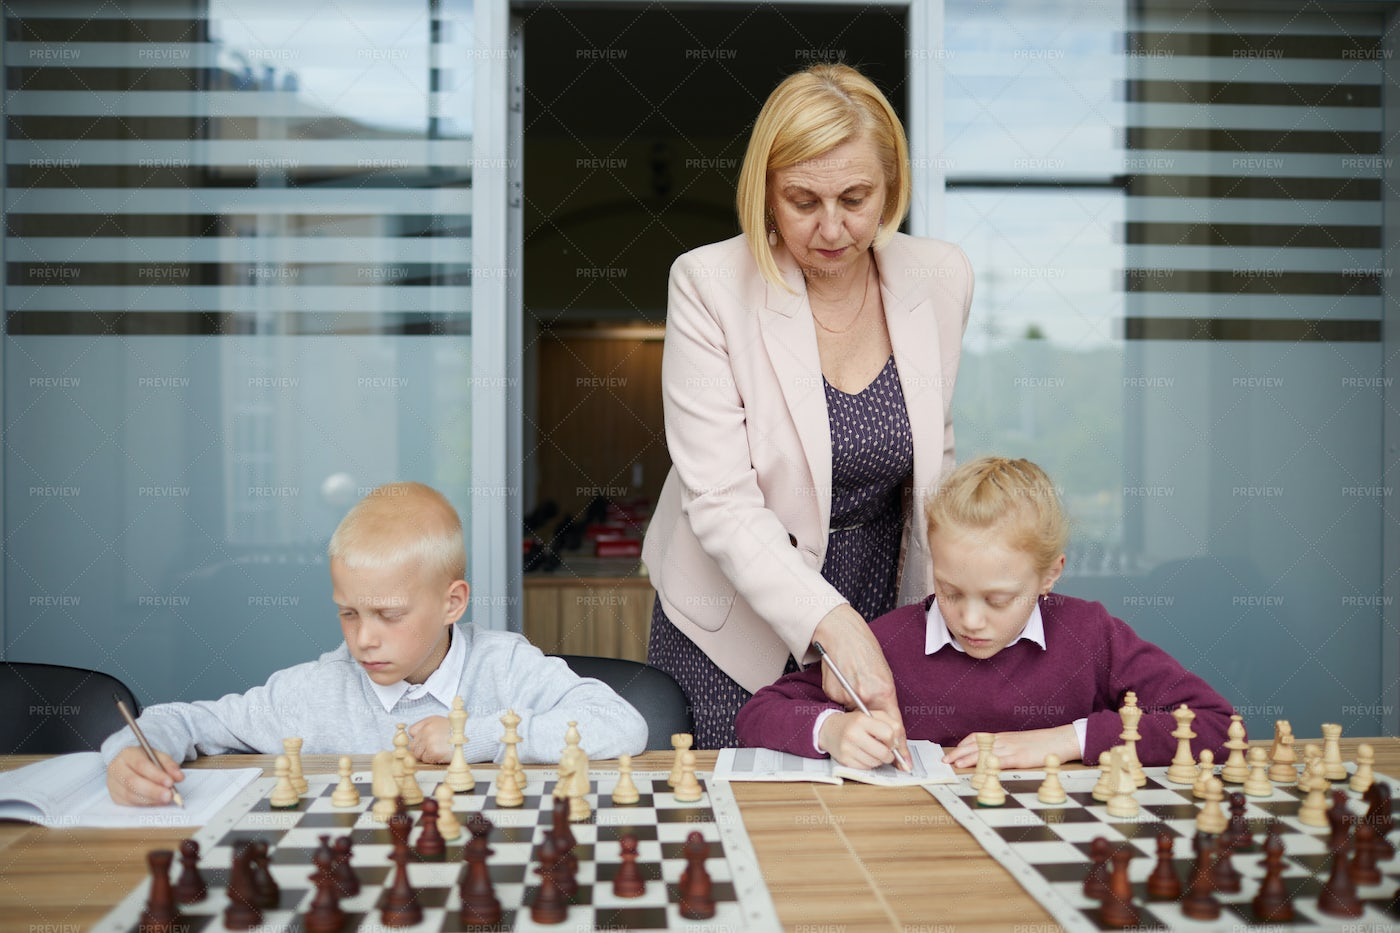 Making Notes About Chess: Stock Photos